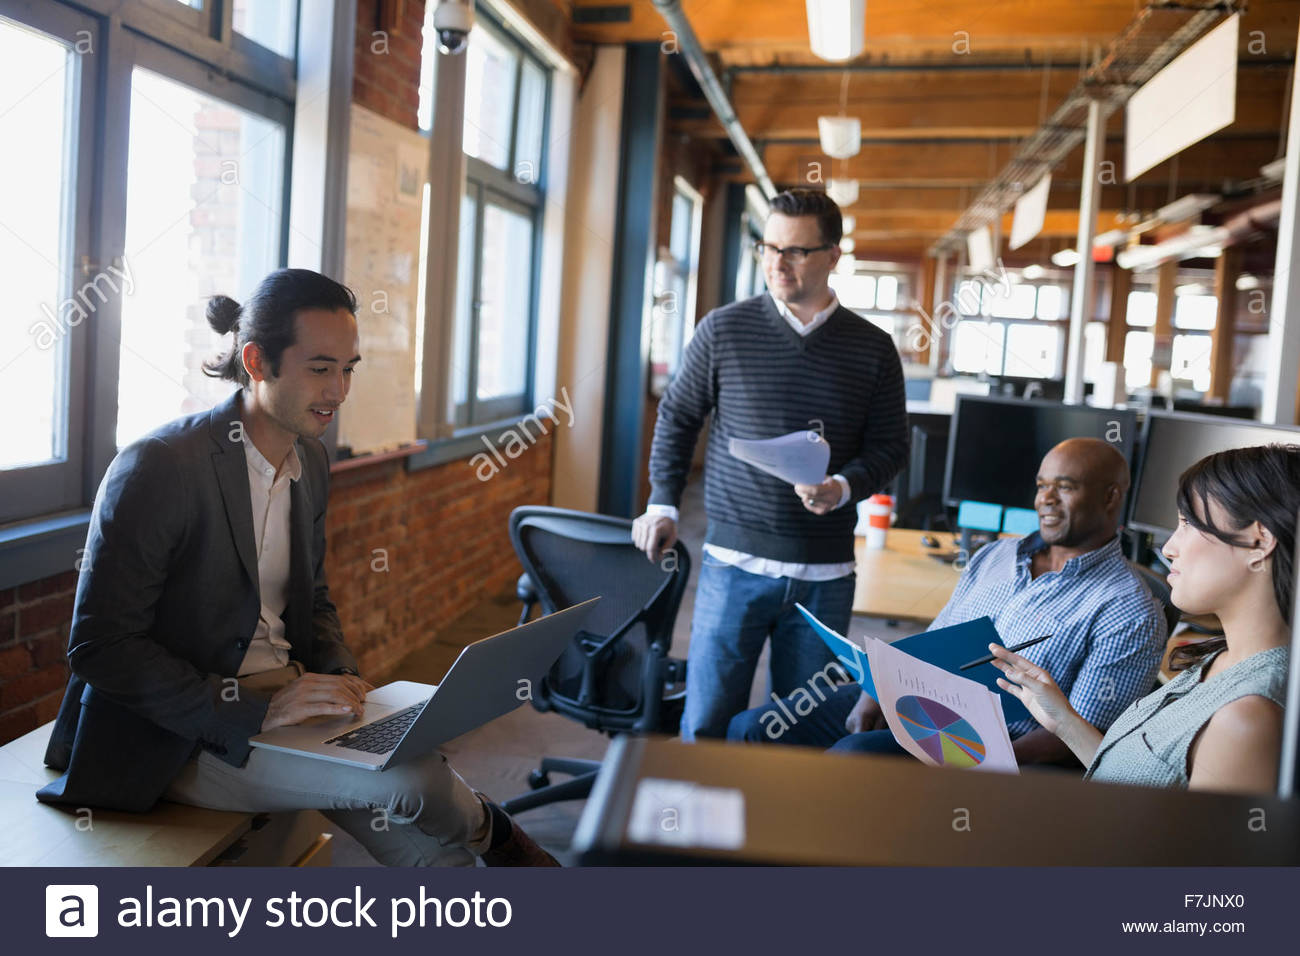 Business people meeting with laptop and paperwork office - Stock Image